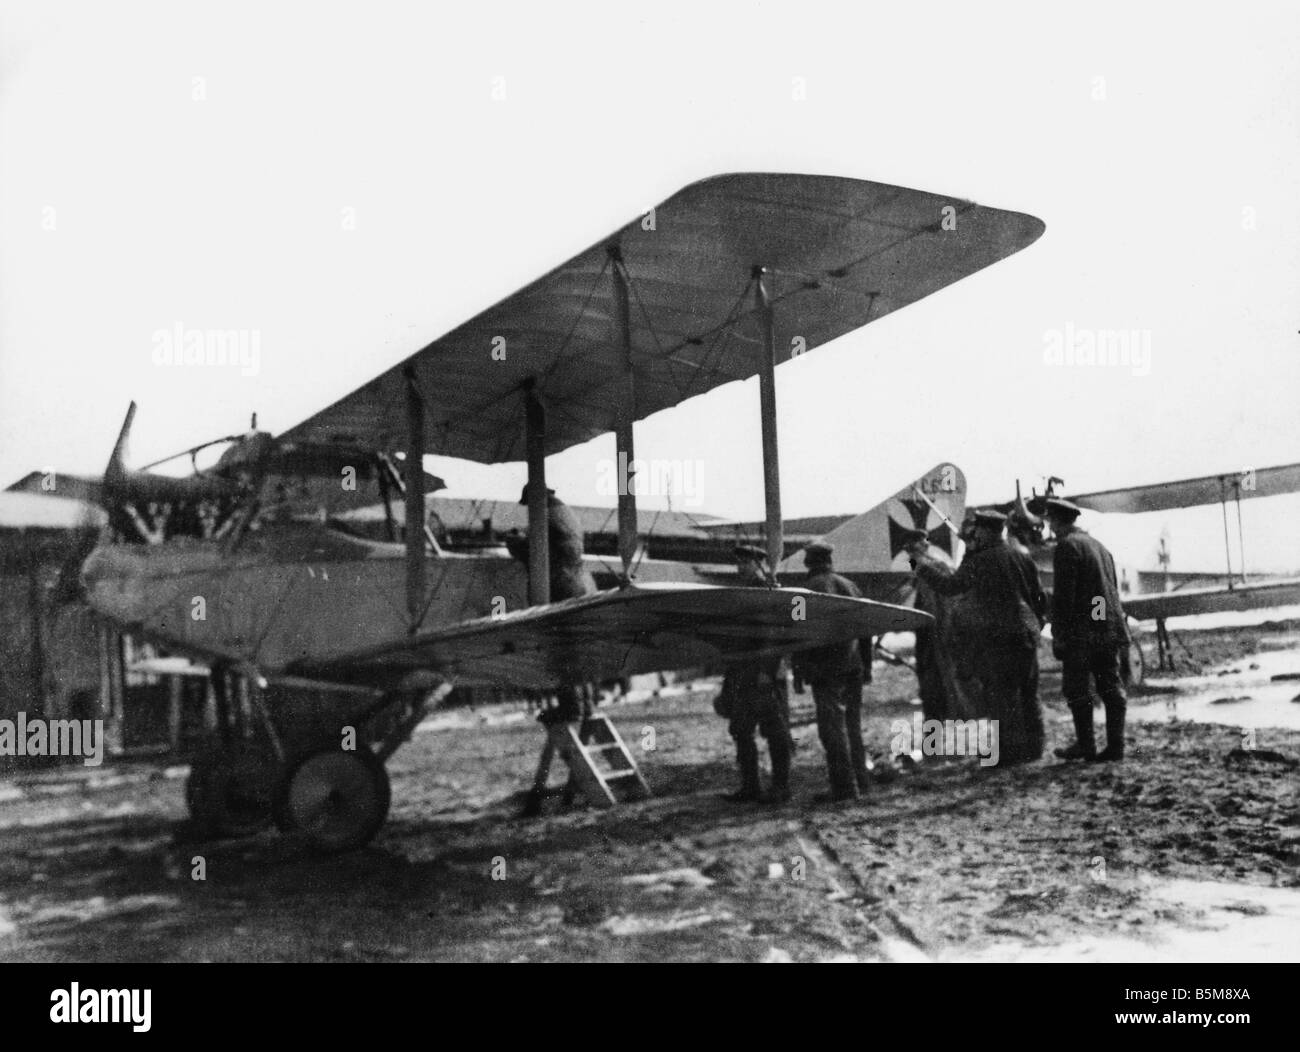 2 G55 L2 1916 1 E German biplane German Airforce 1916 History WWI Aerial Warfare A biplane of the German Airforce - Stock Image